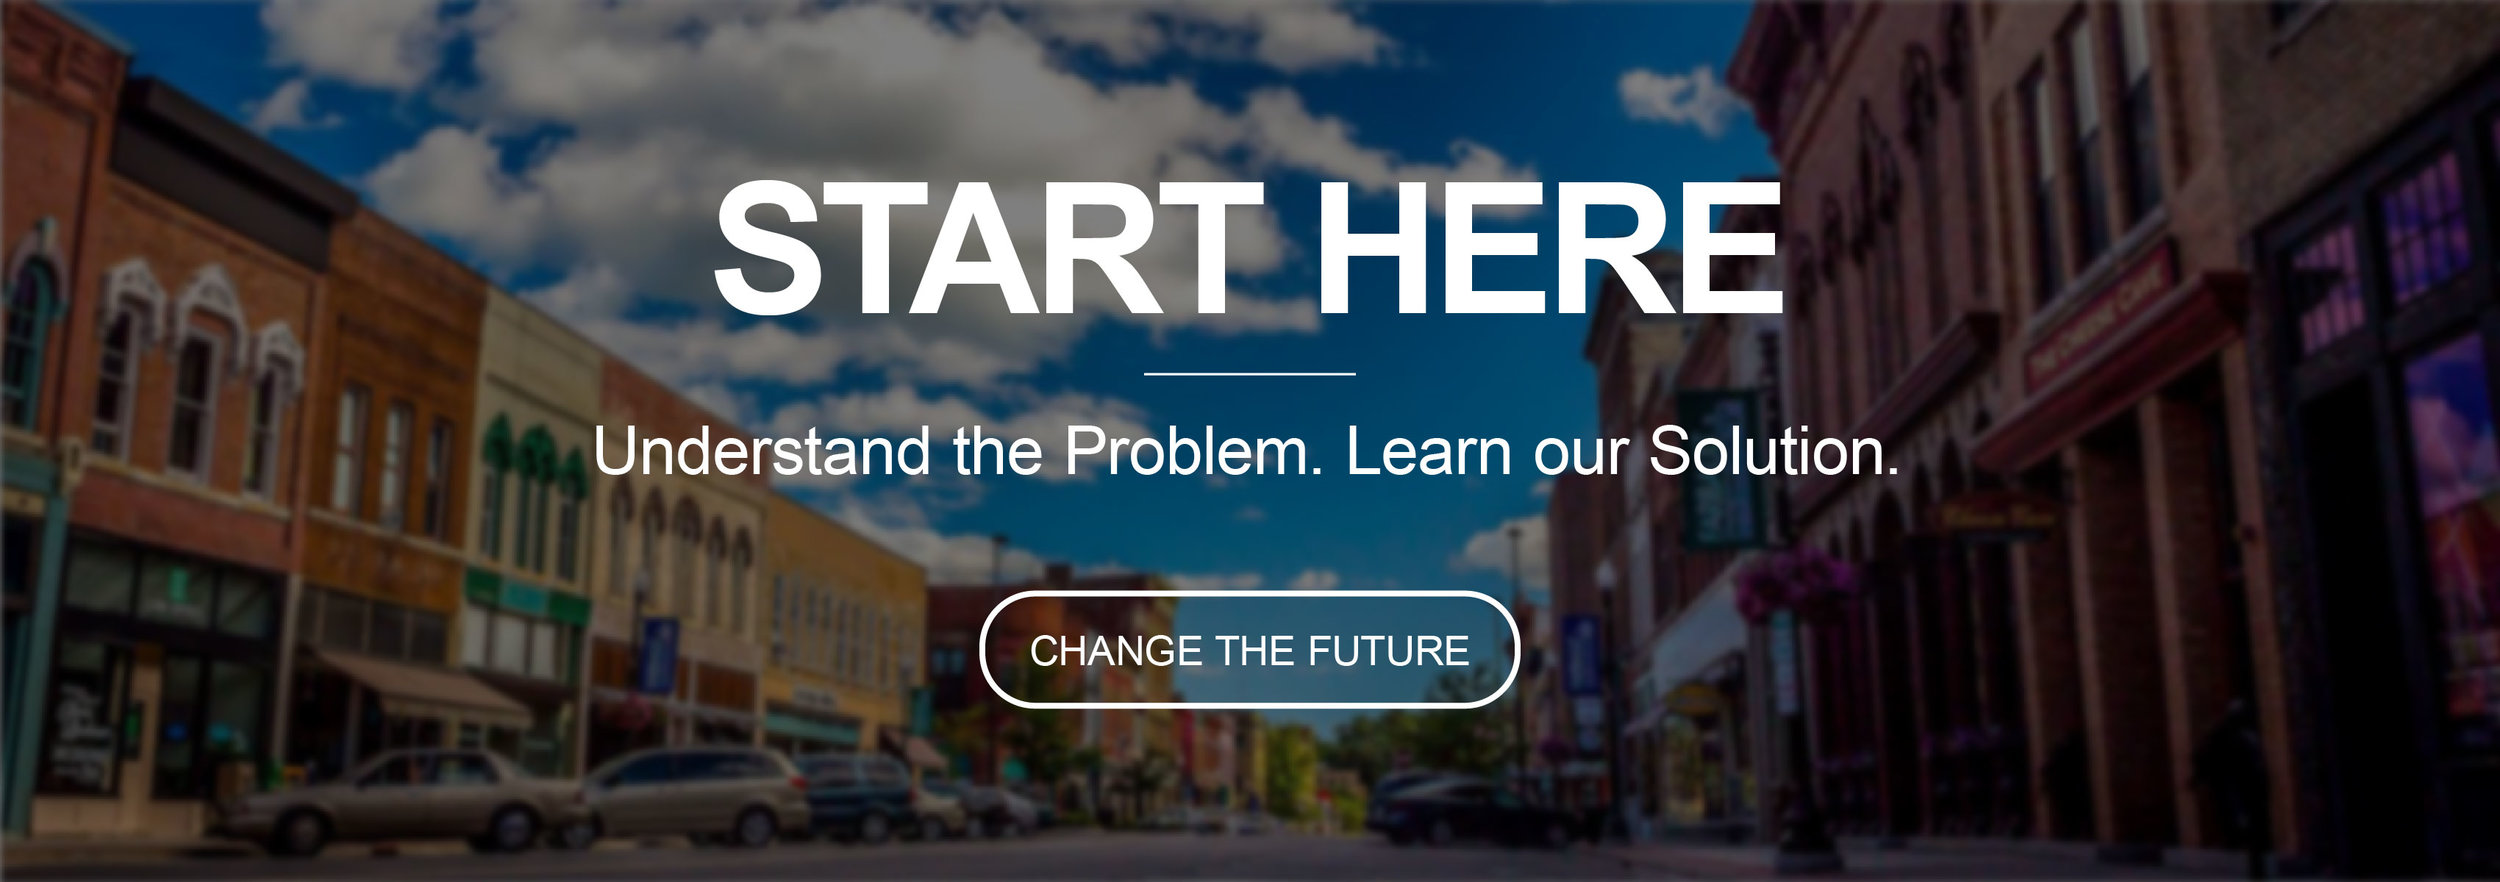 Innovation-Collective-Start-Here-Downtown.jpg